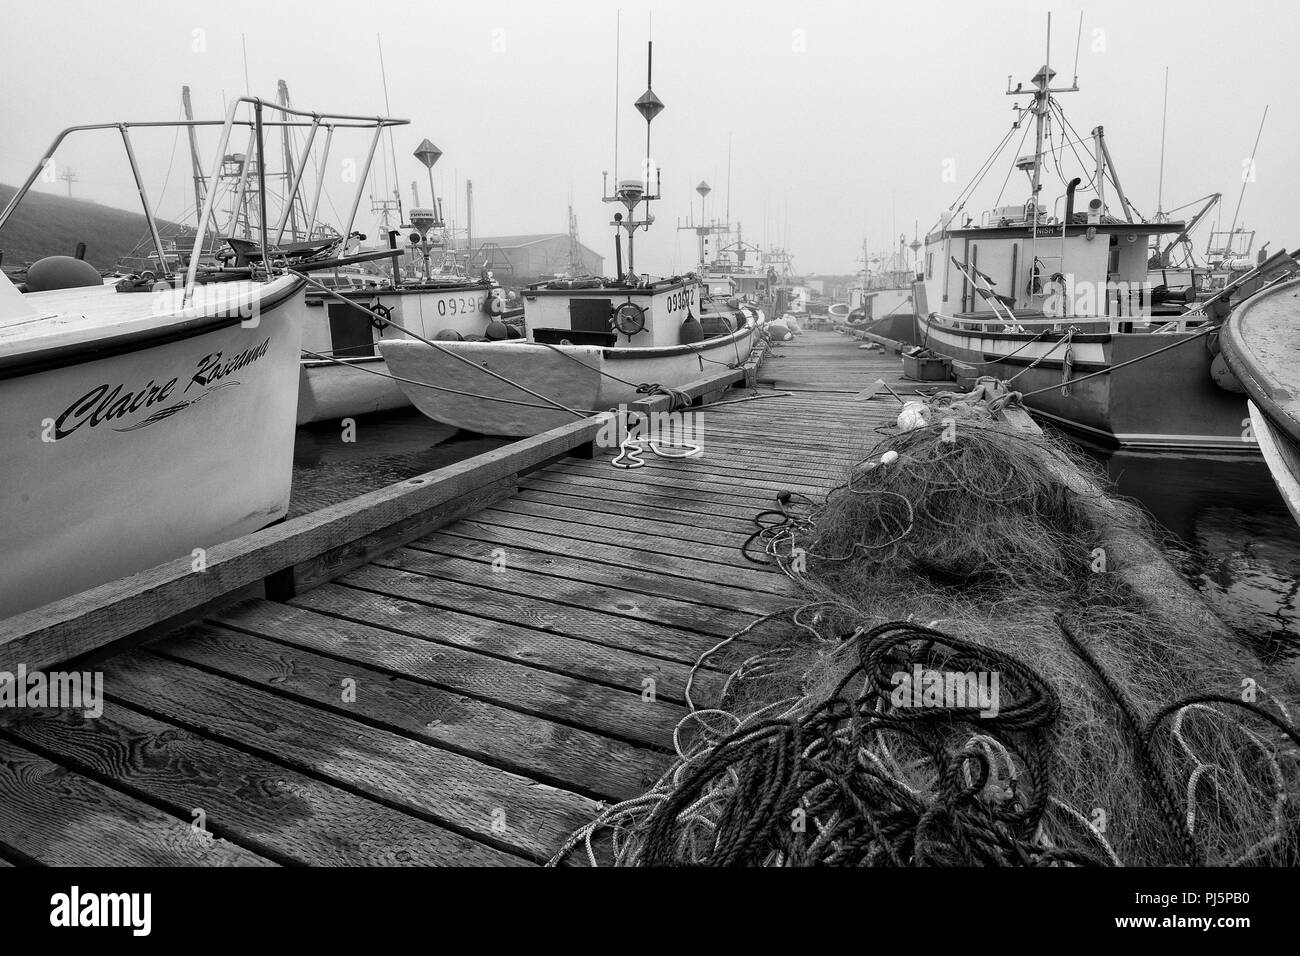 Fishing boats in foggy harbor in Saint Bride's, Newfoundland and Labrador - Stock Image